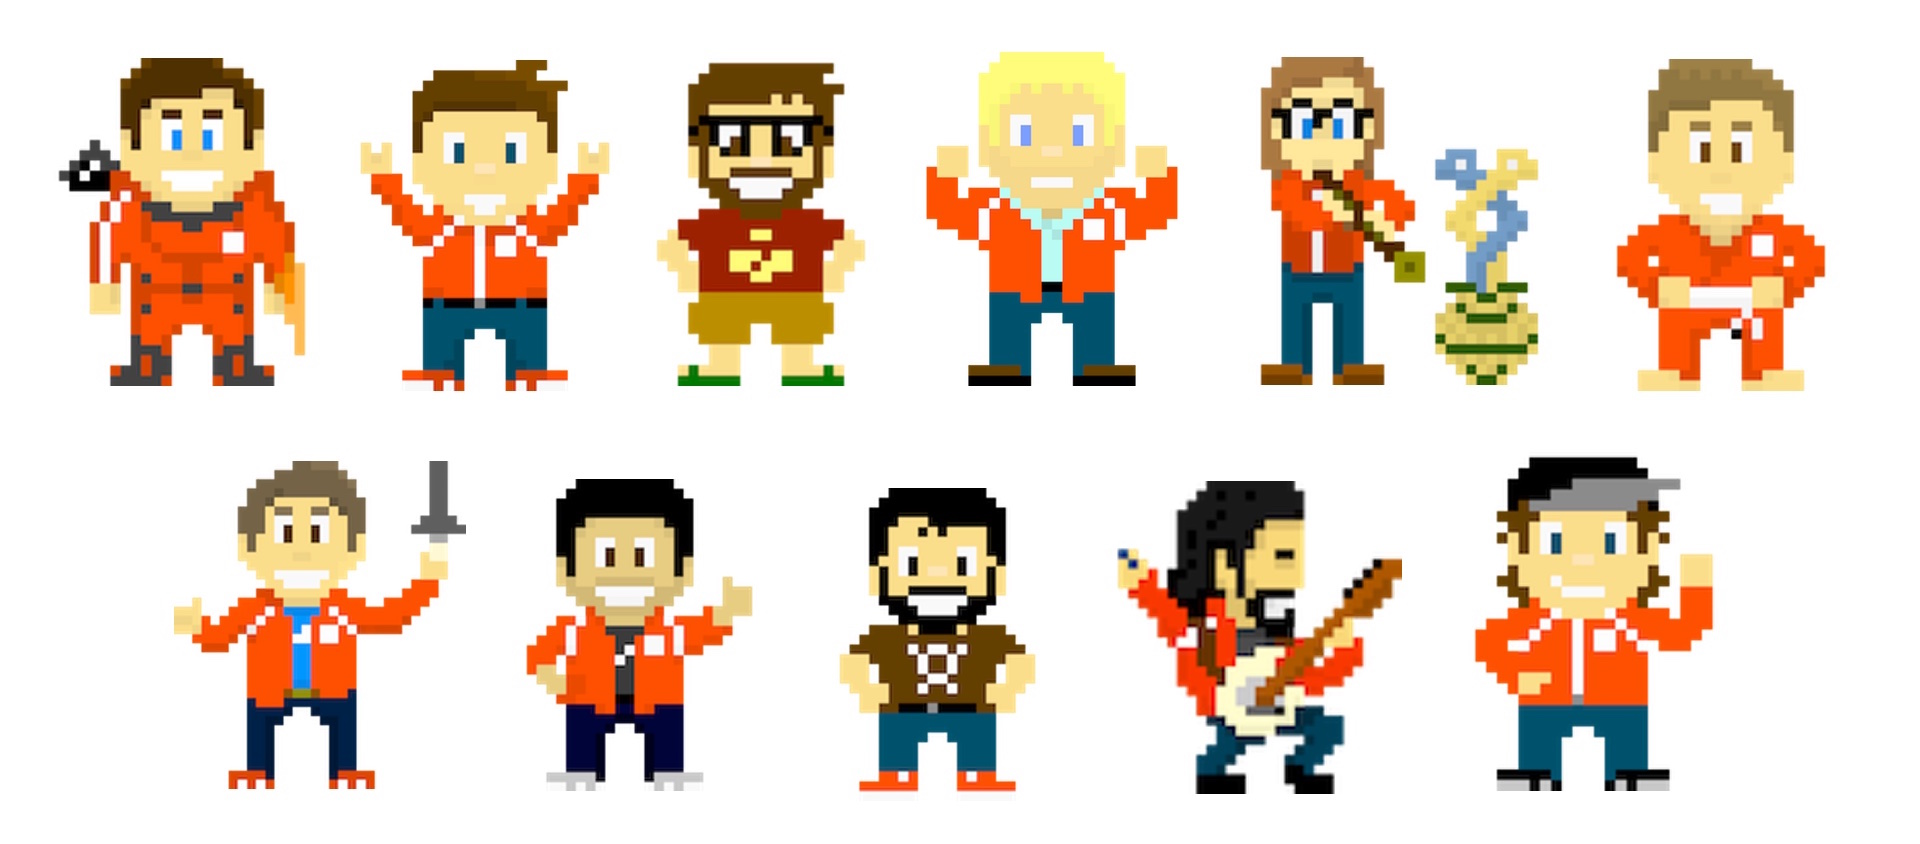 The DevNetwork as 8-bit characters